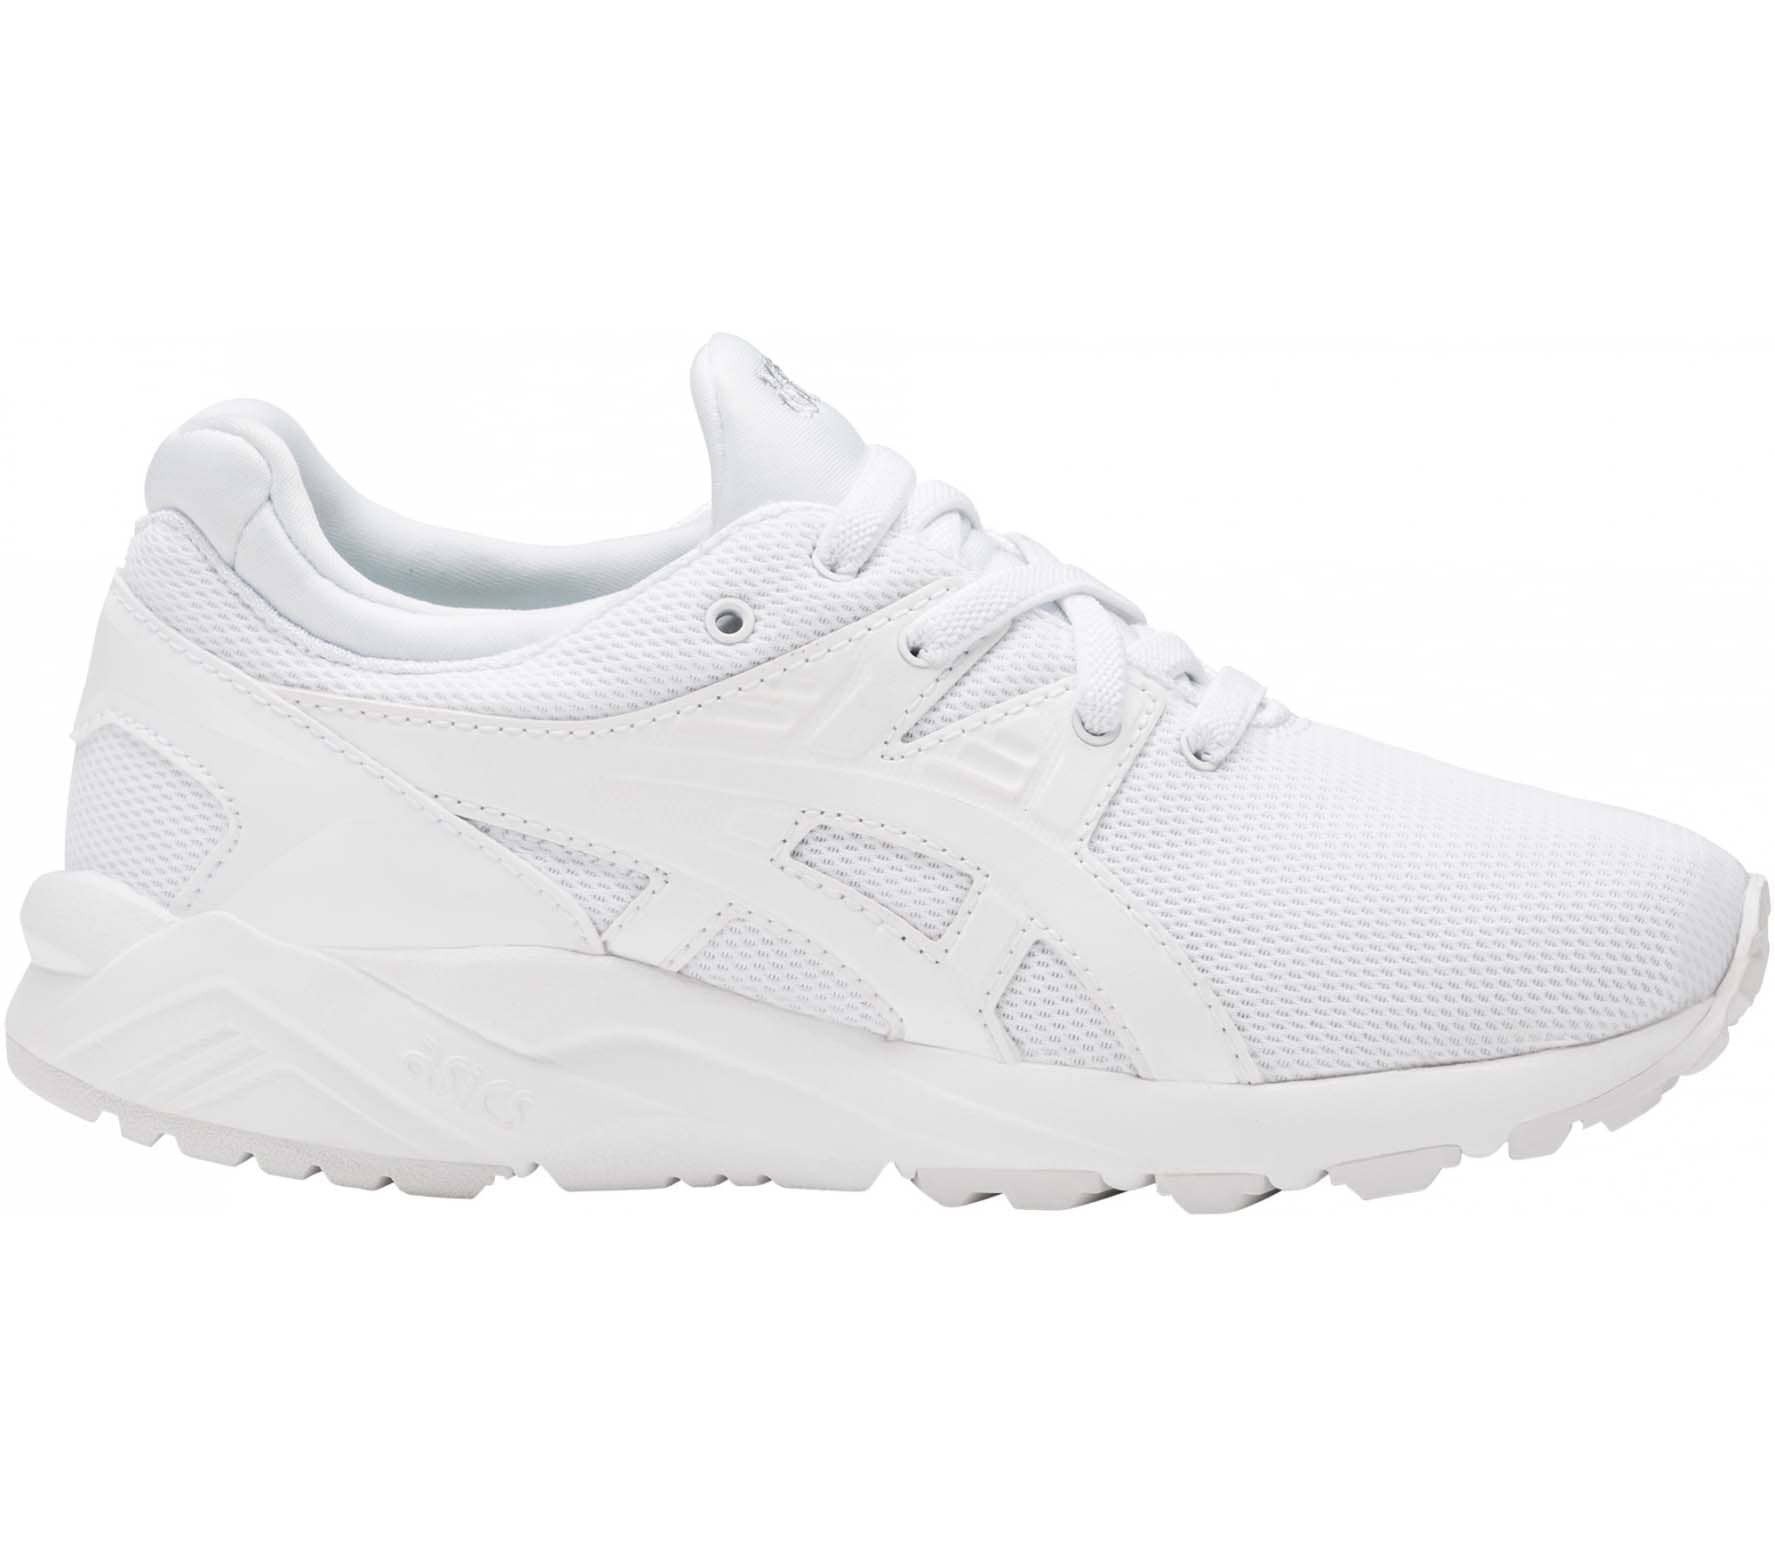 new style b3eef af7ff ASICS Gel-Kayano Trainer Evo Ps Children Training Shoes white